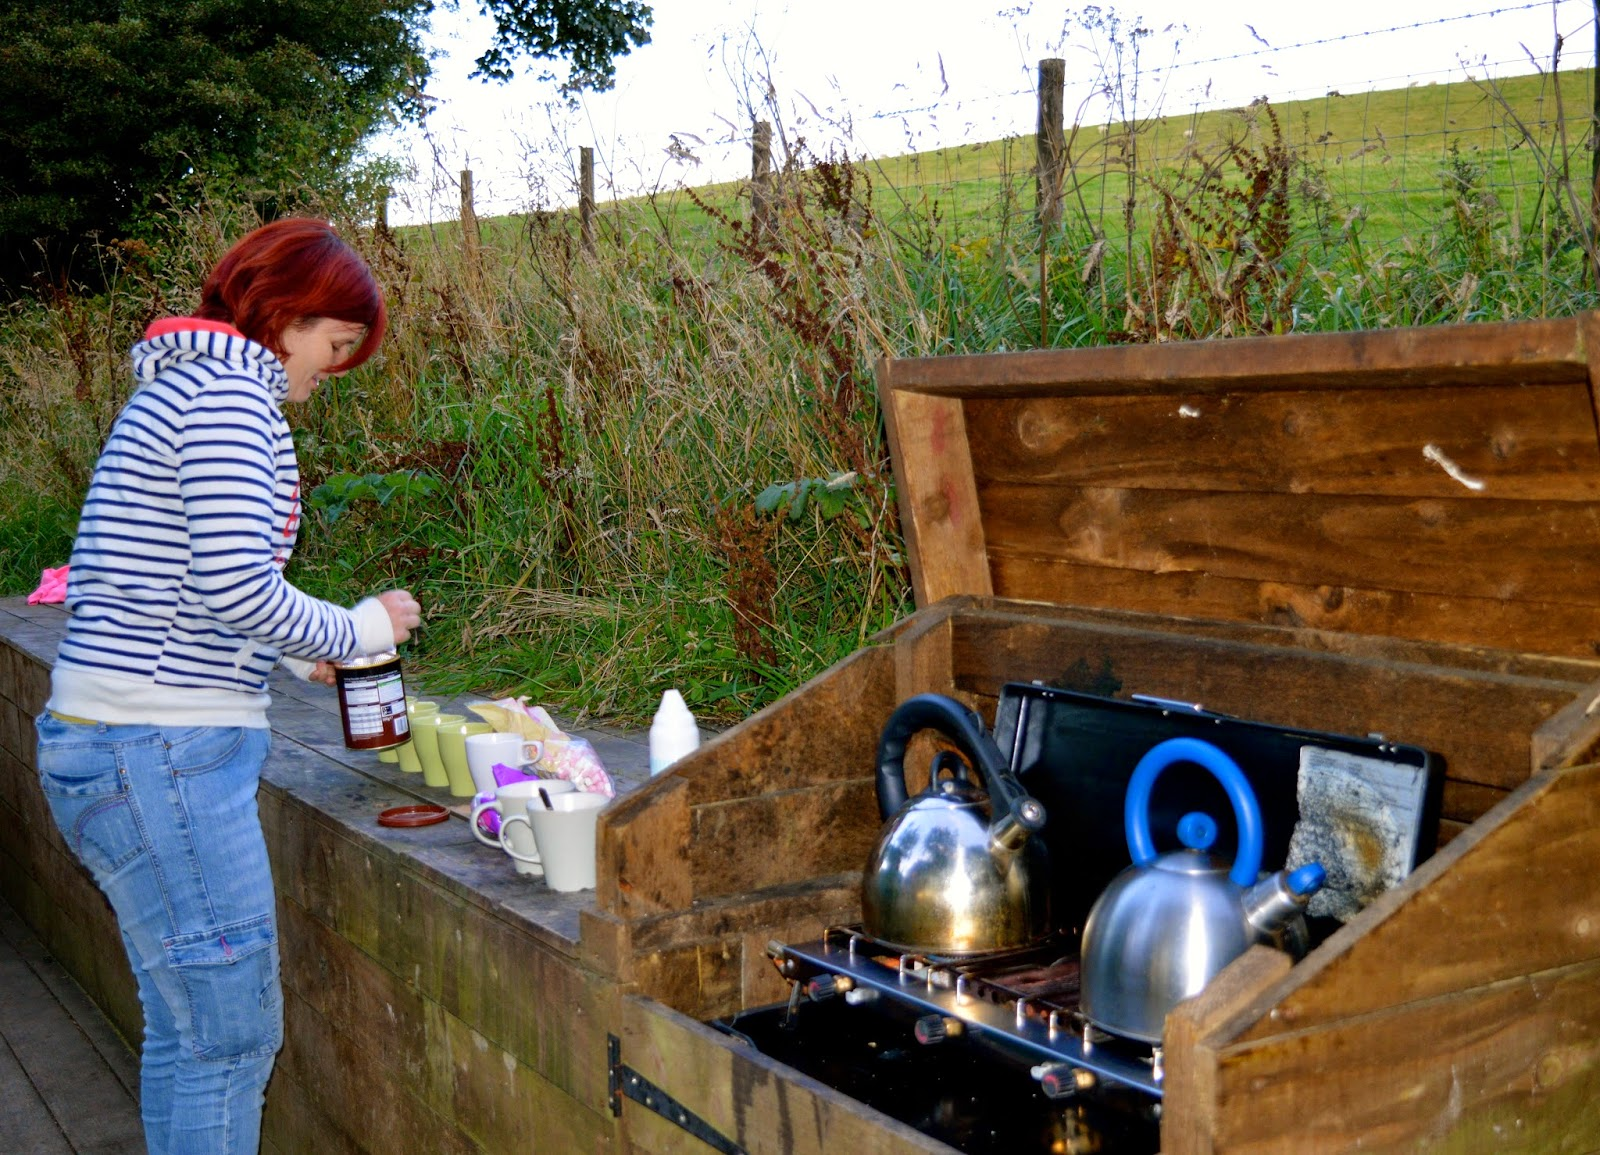 Westwood Yurts | Glamping at National Trust Gibside, County Durham - A Review - hot chocolate station